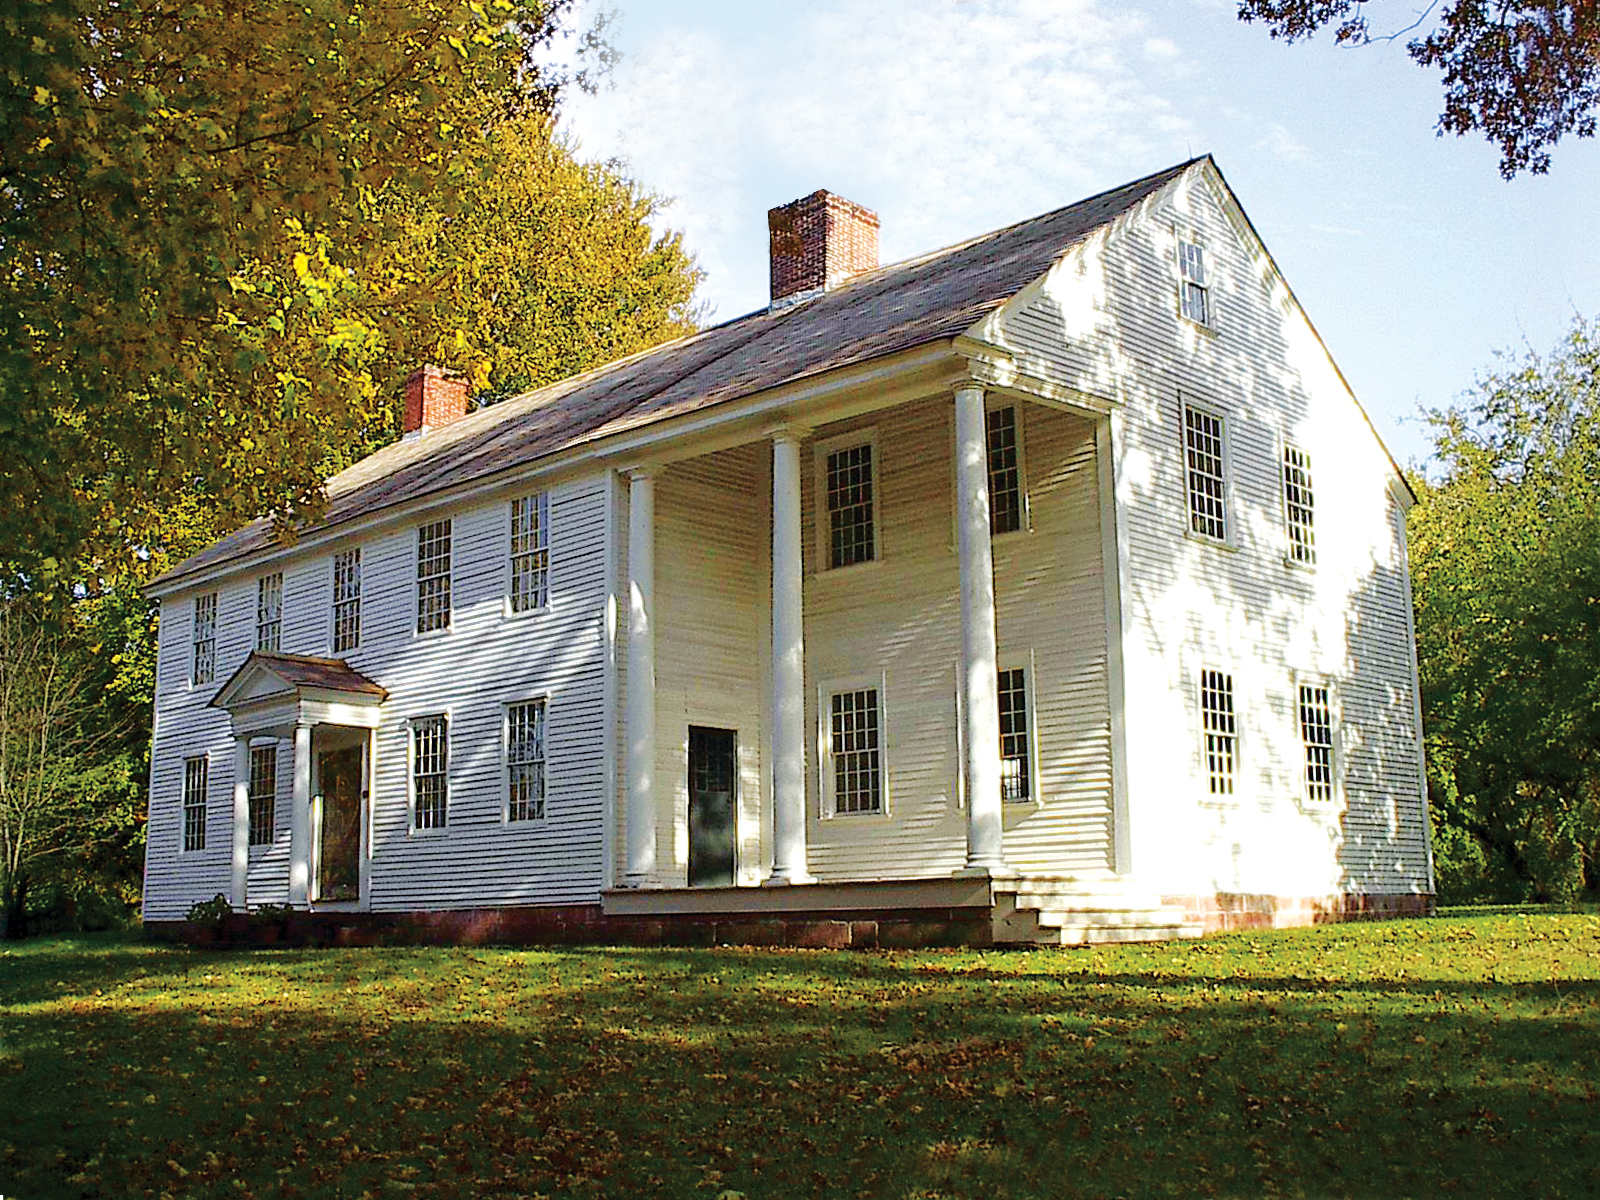 The Oliver Ellsworth Homestead was home to the third Chief Justice of the United States Supreme Court.